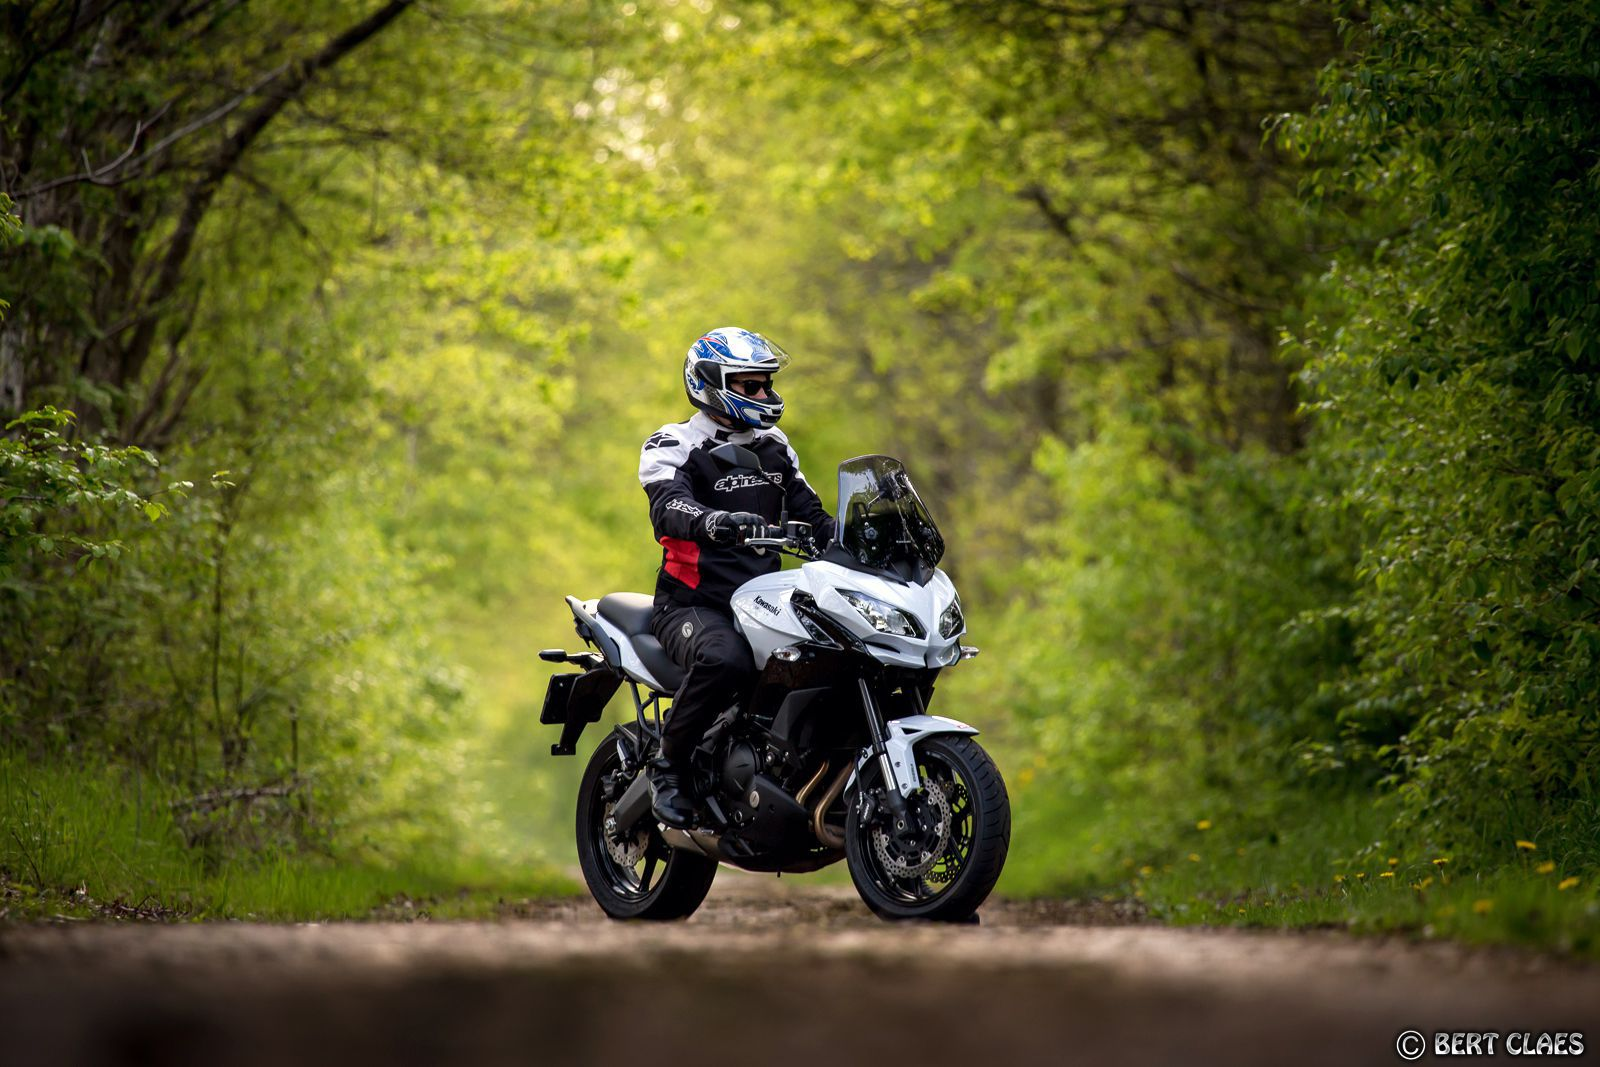 white Kawasaki Versys 650 in a forest